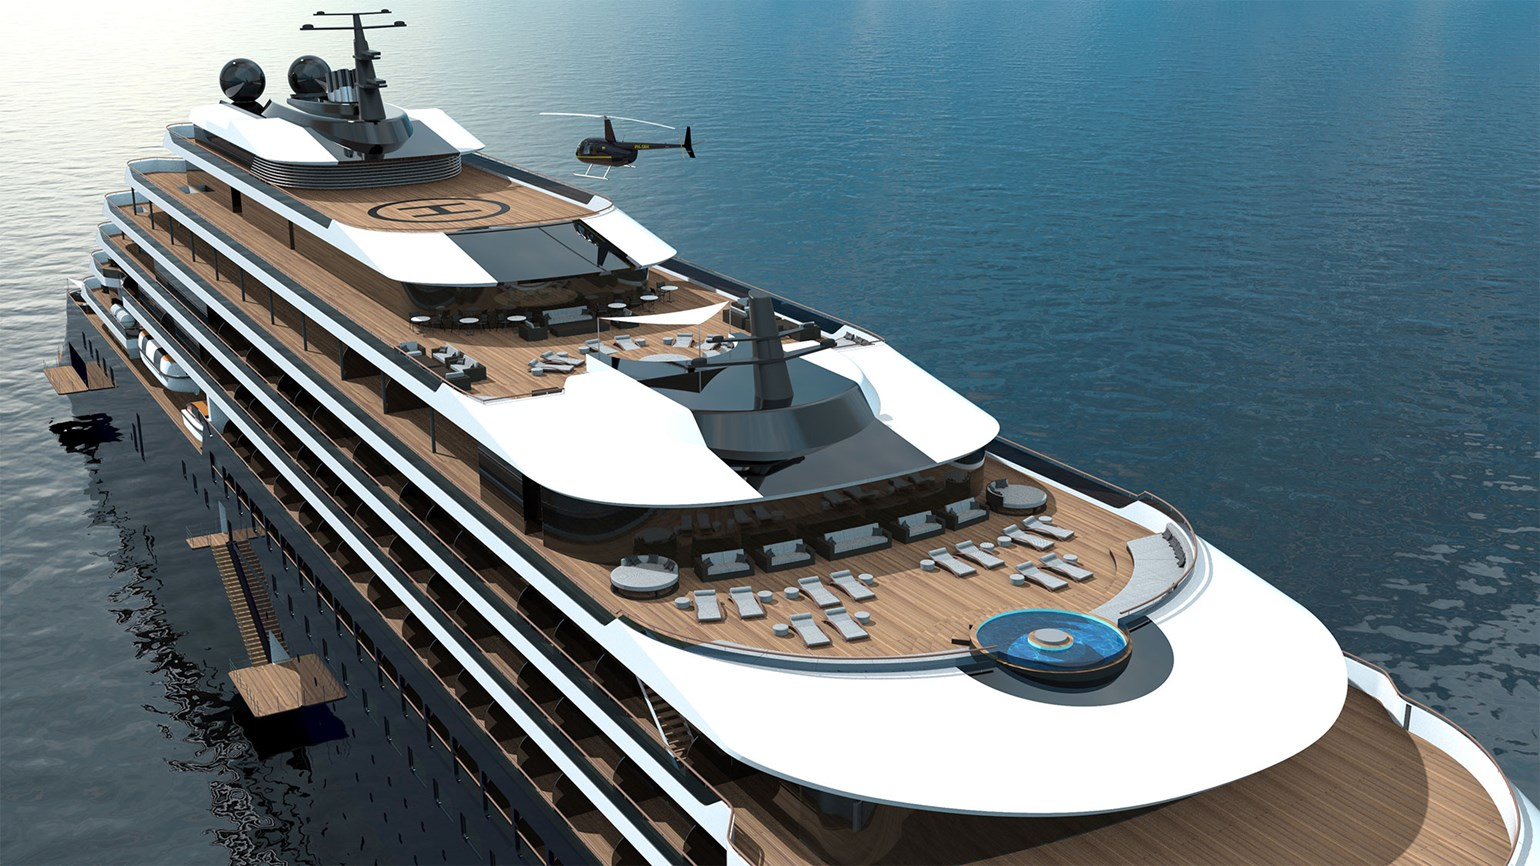 Hospitality ace Ritz-Carlton proposes to bring something new to cruising